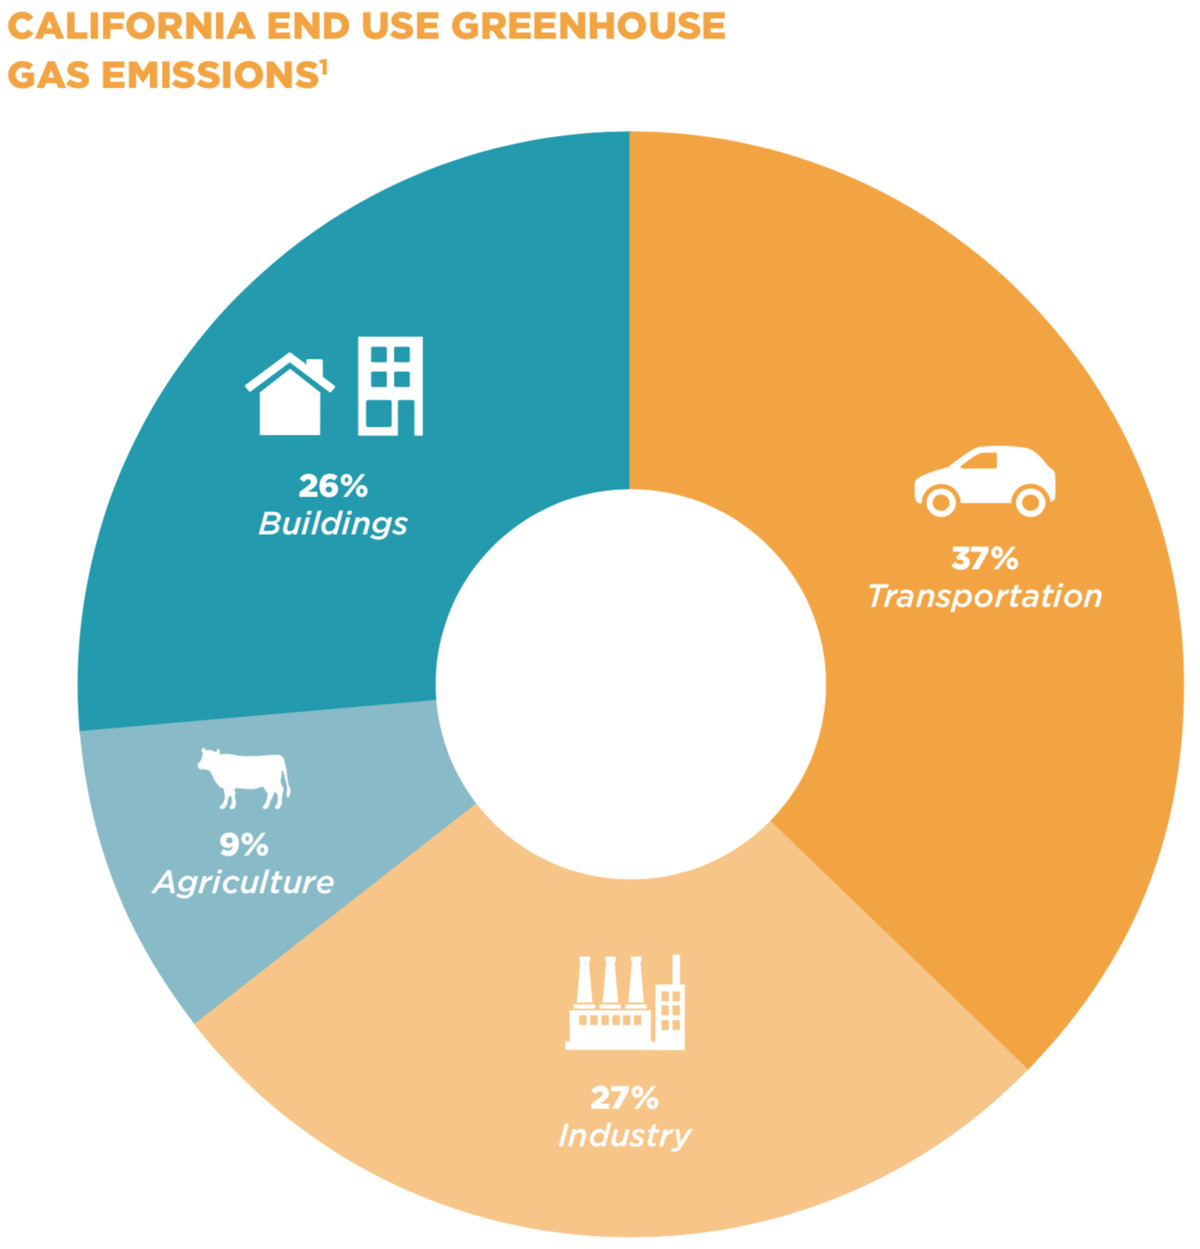 California greenhouse gas emissions by end use.